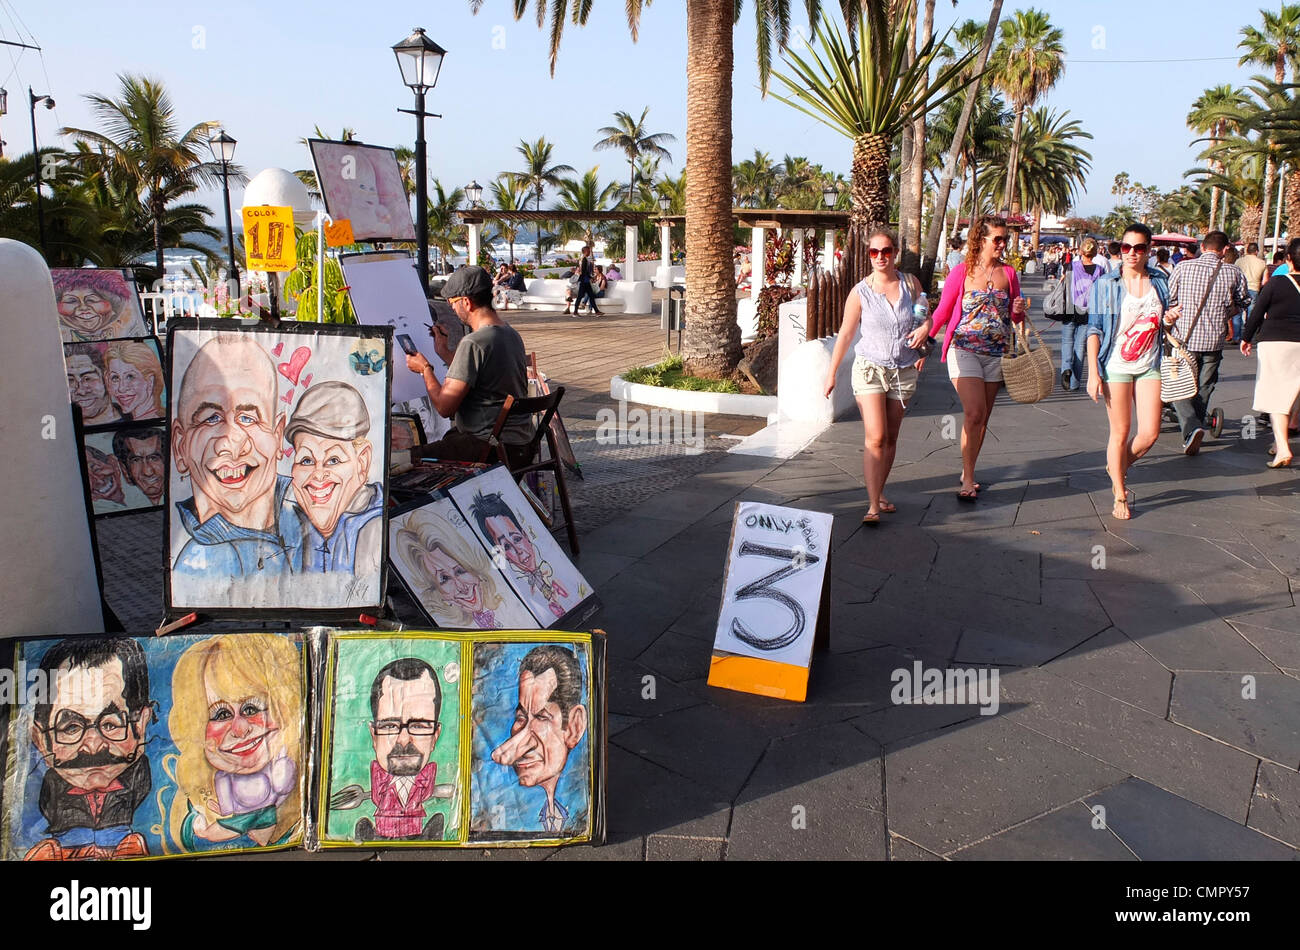 a street artist  drawing  caricatures - Stock Image